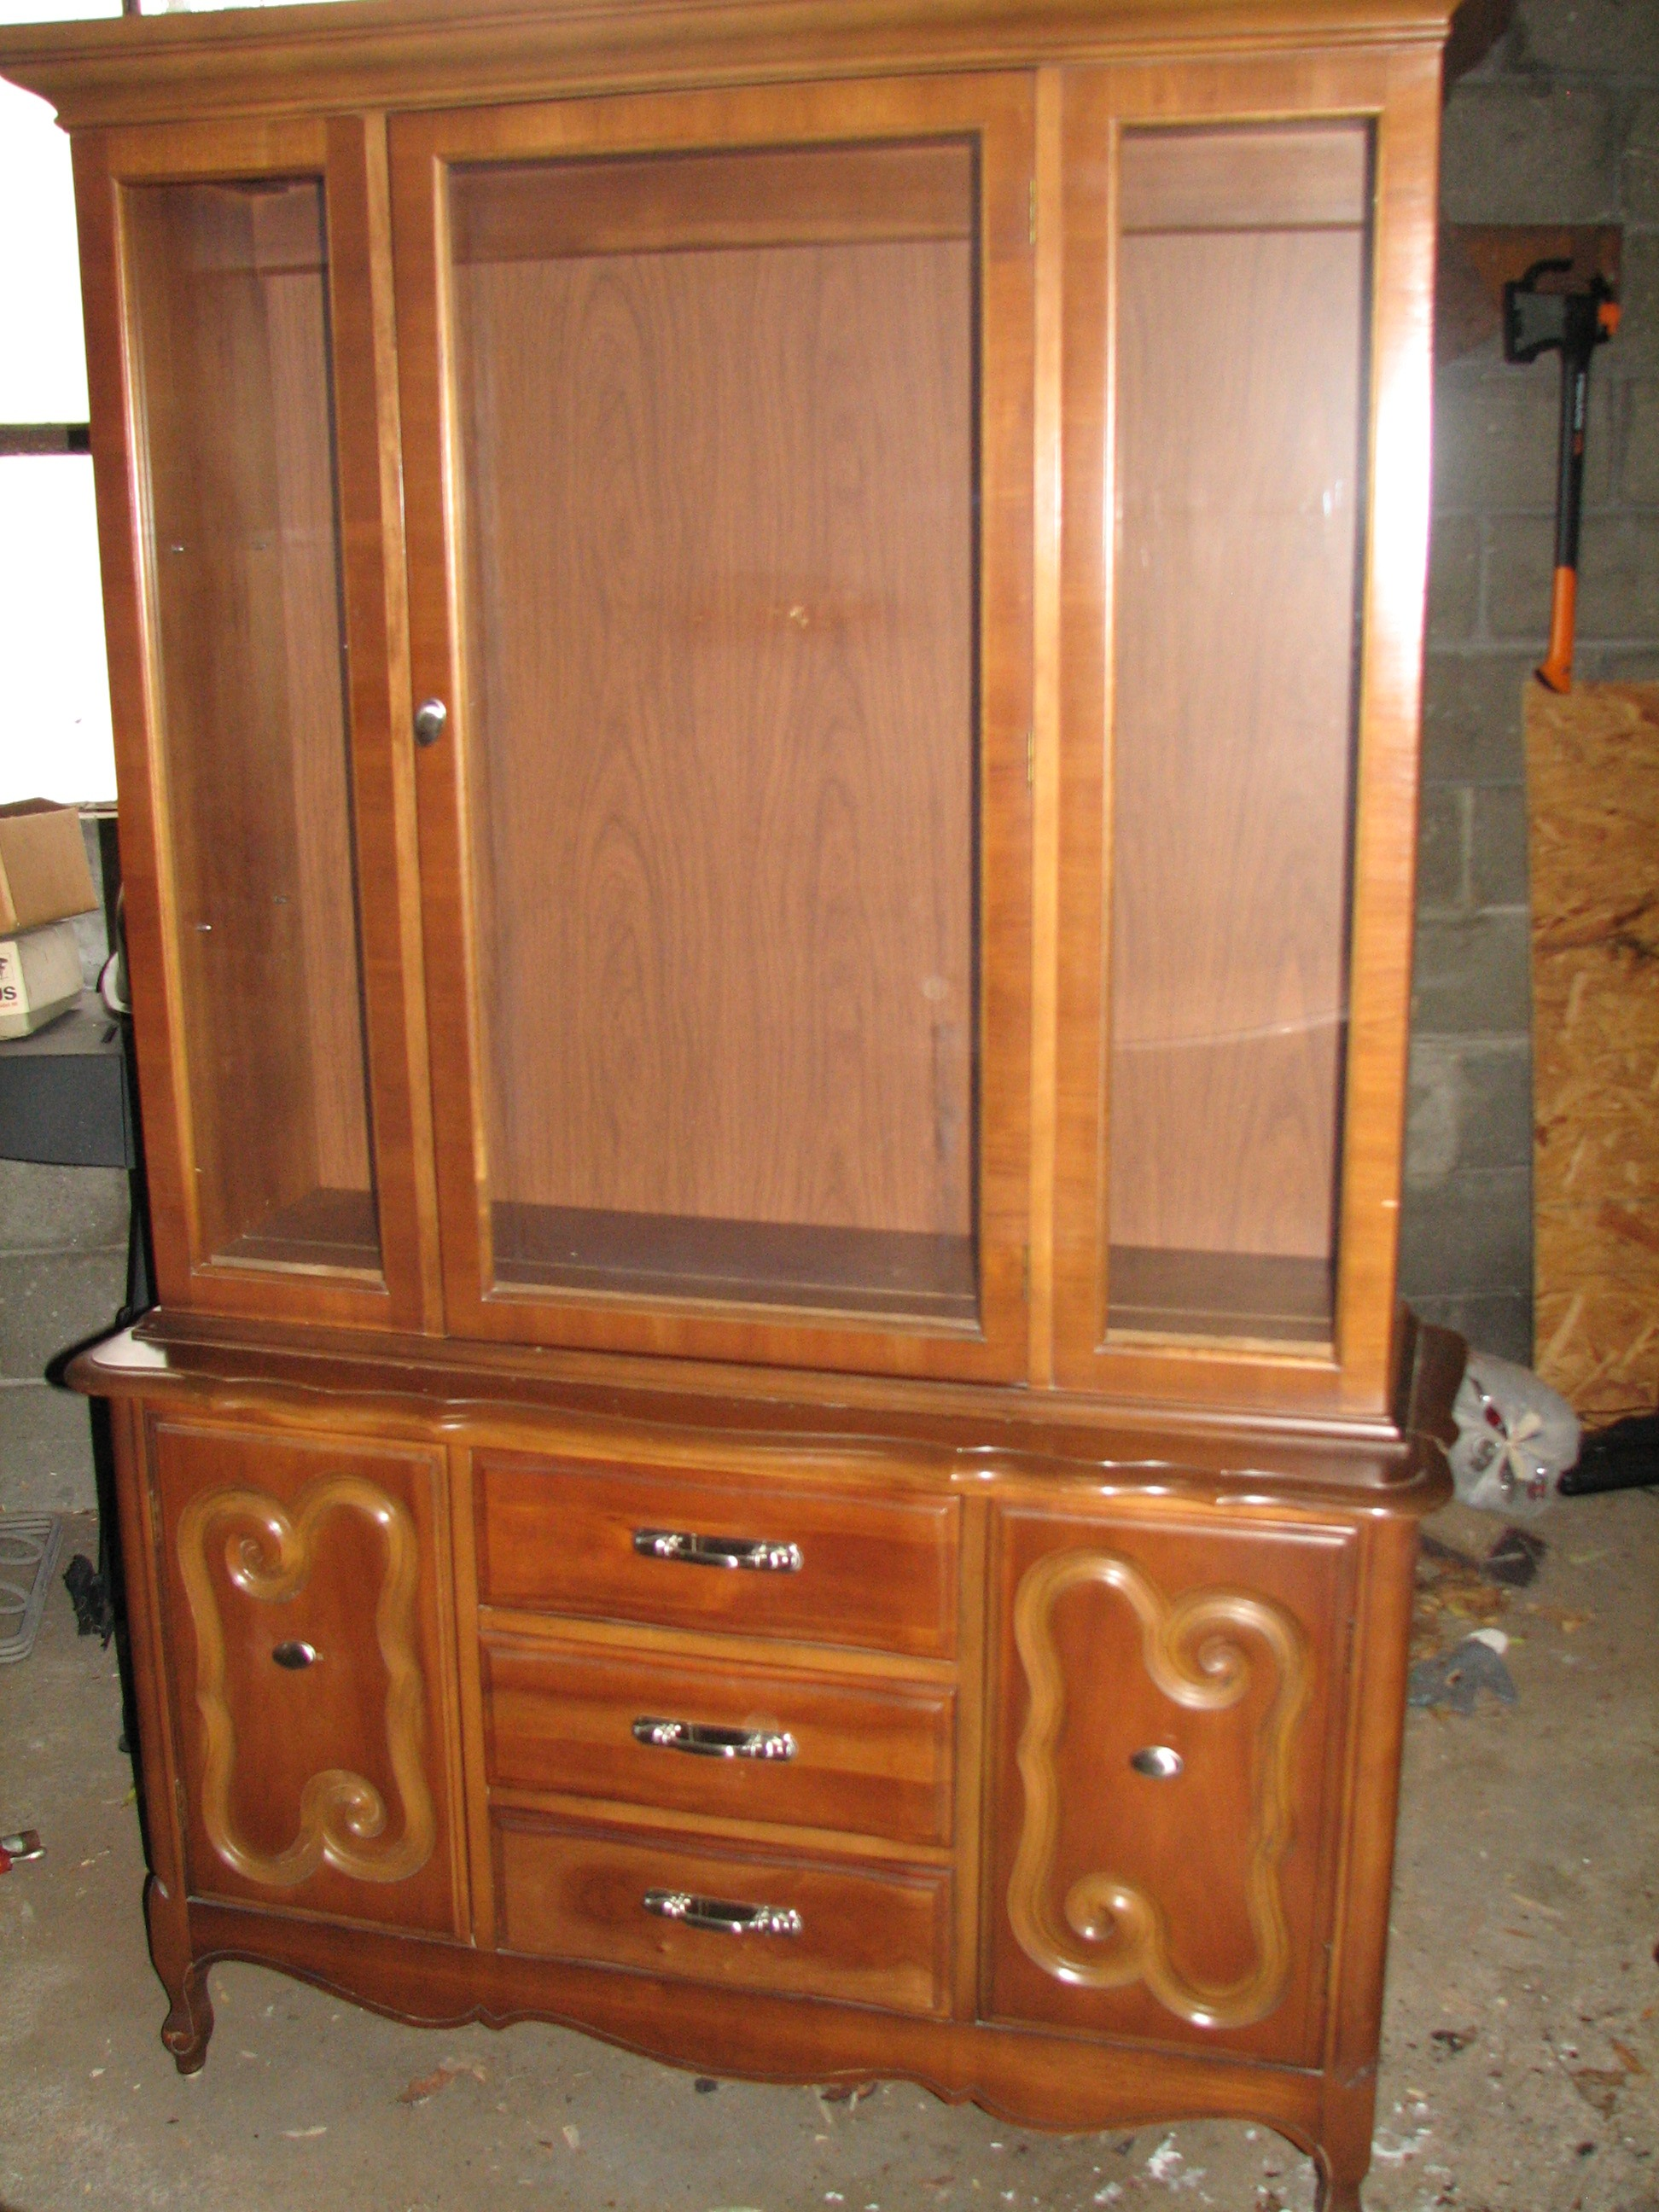 Antique Maple Dining Room Set Revitalizing An Antique Maple Dining Room Set Part 2